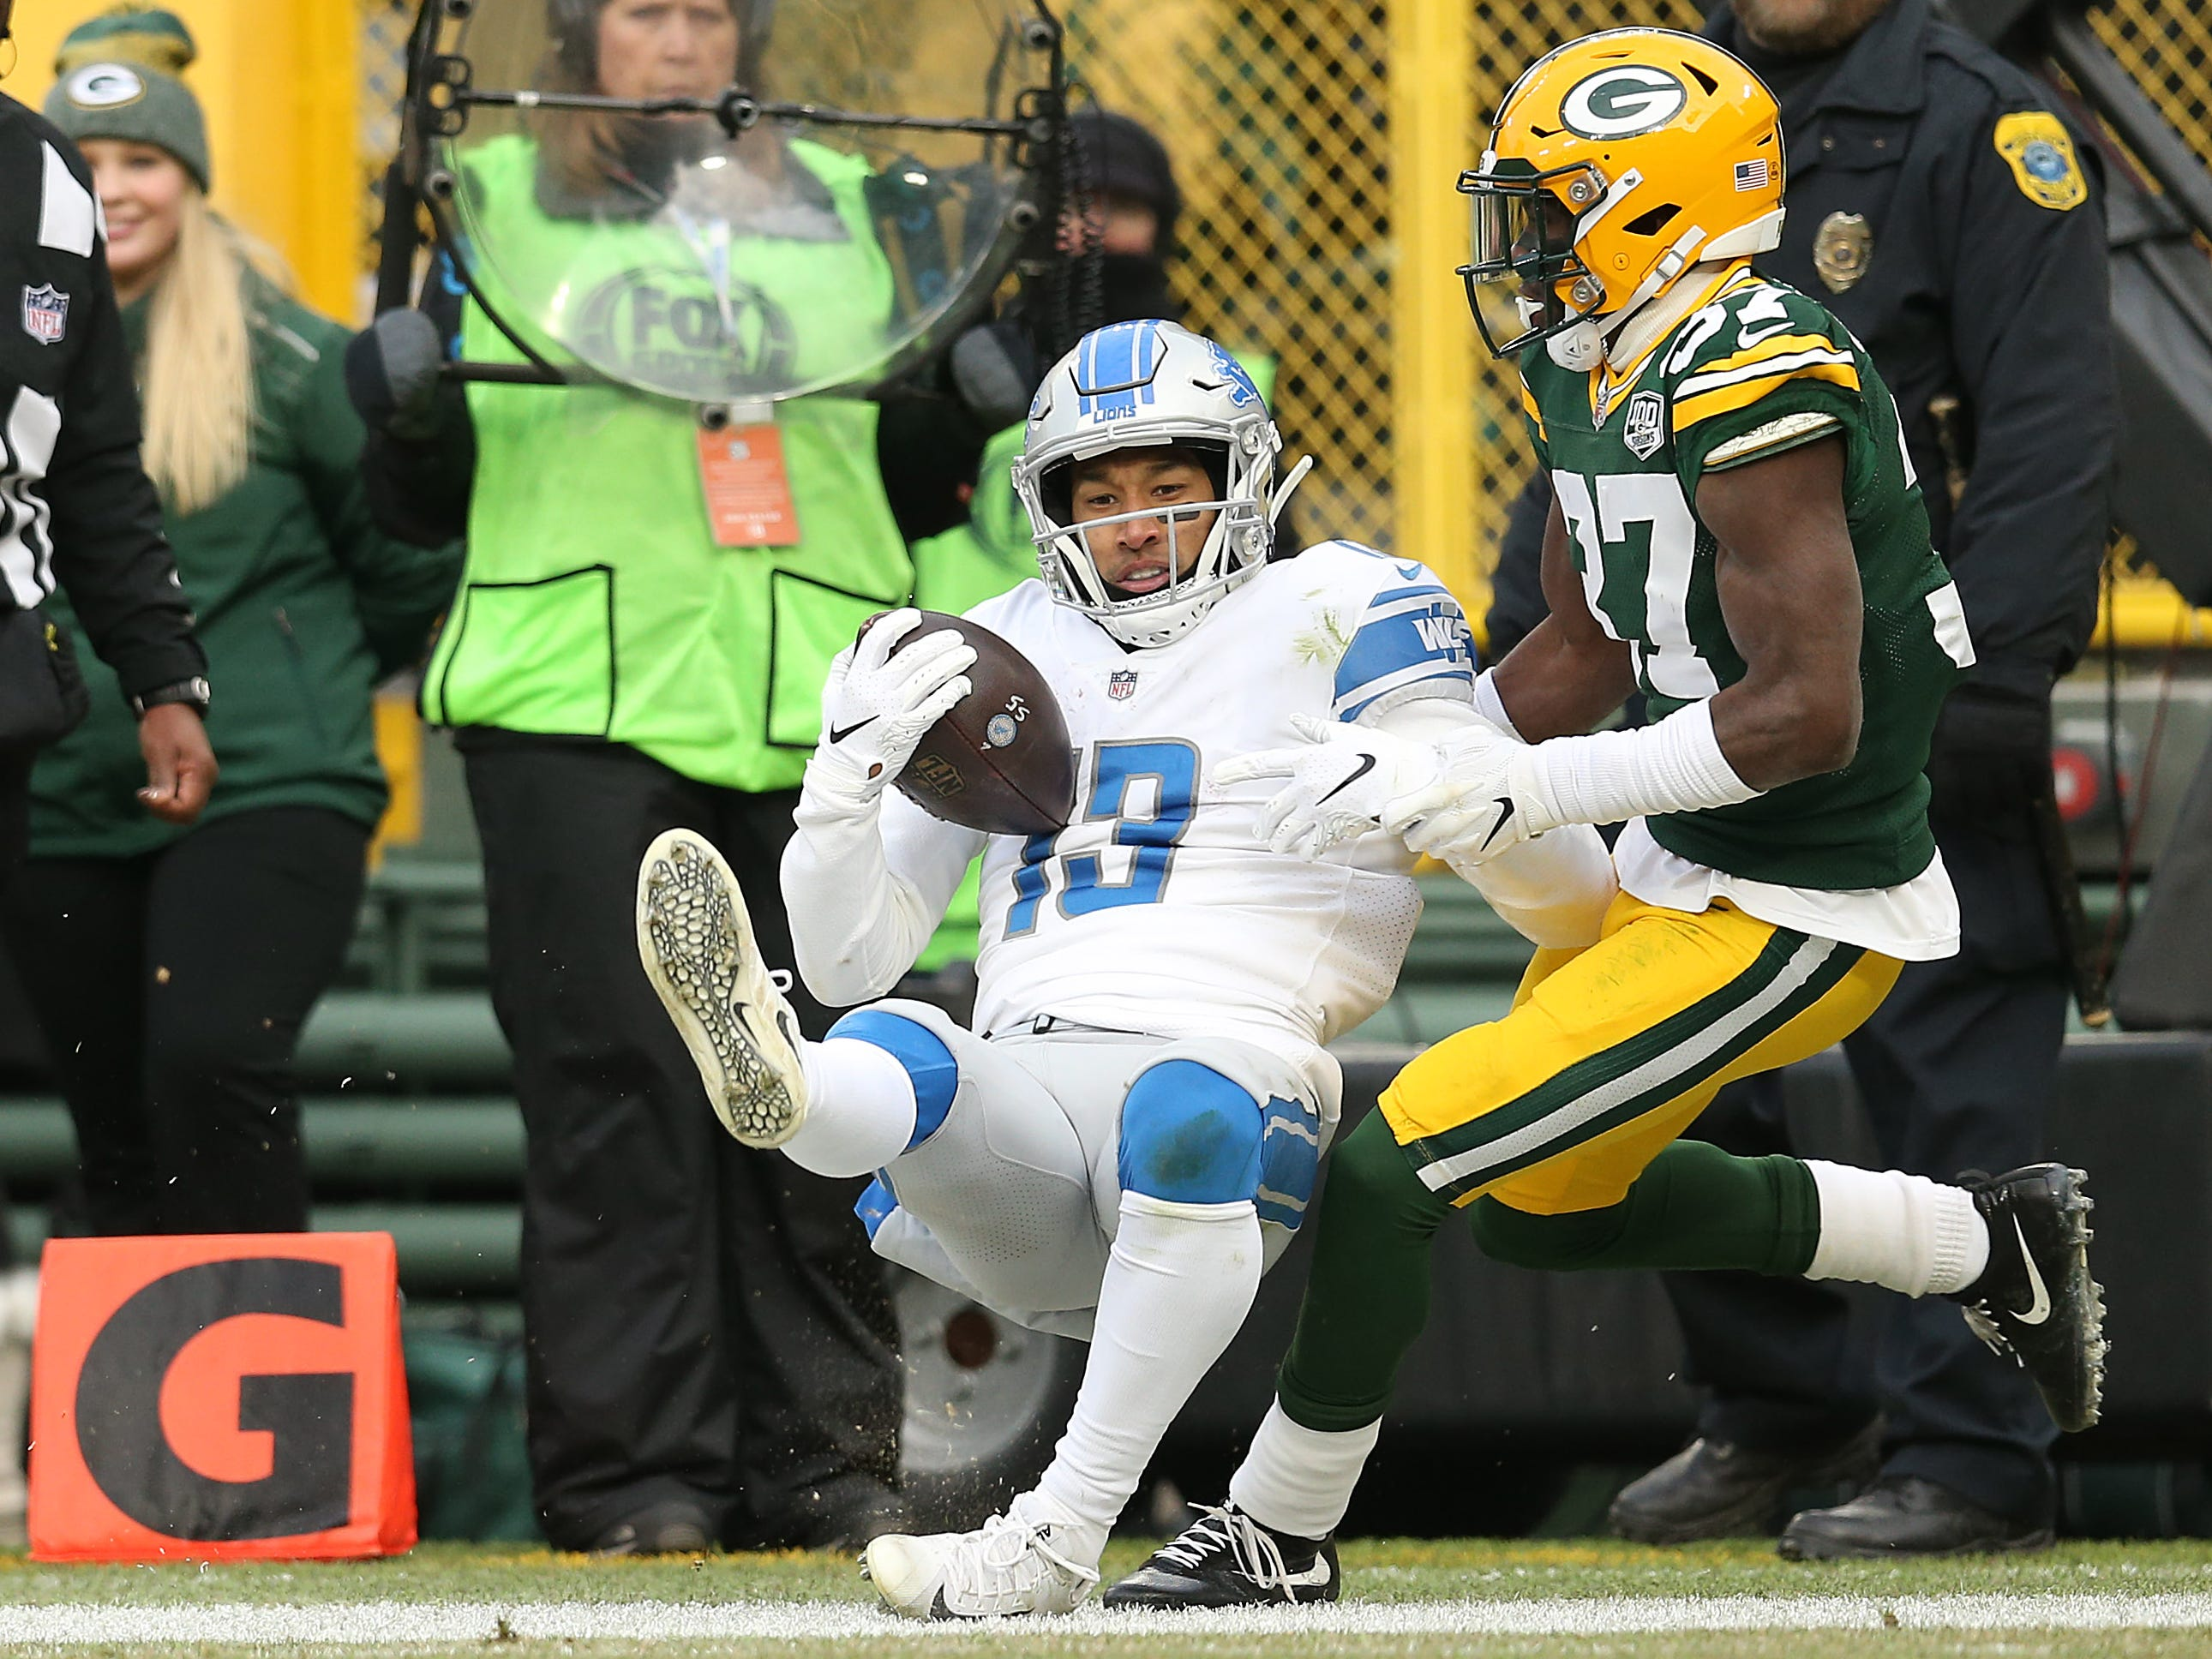 Lions wide receiver TJ Jones catches a pass for a touchdown against the Packers' Josh Jackson during the second half of the Lions' 31-0 win on Sunday, Dec. 30, 2018, in Green Bay, Wis.